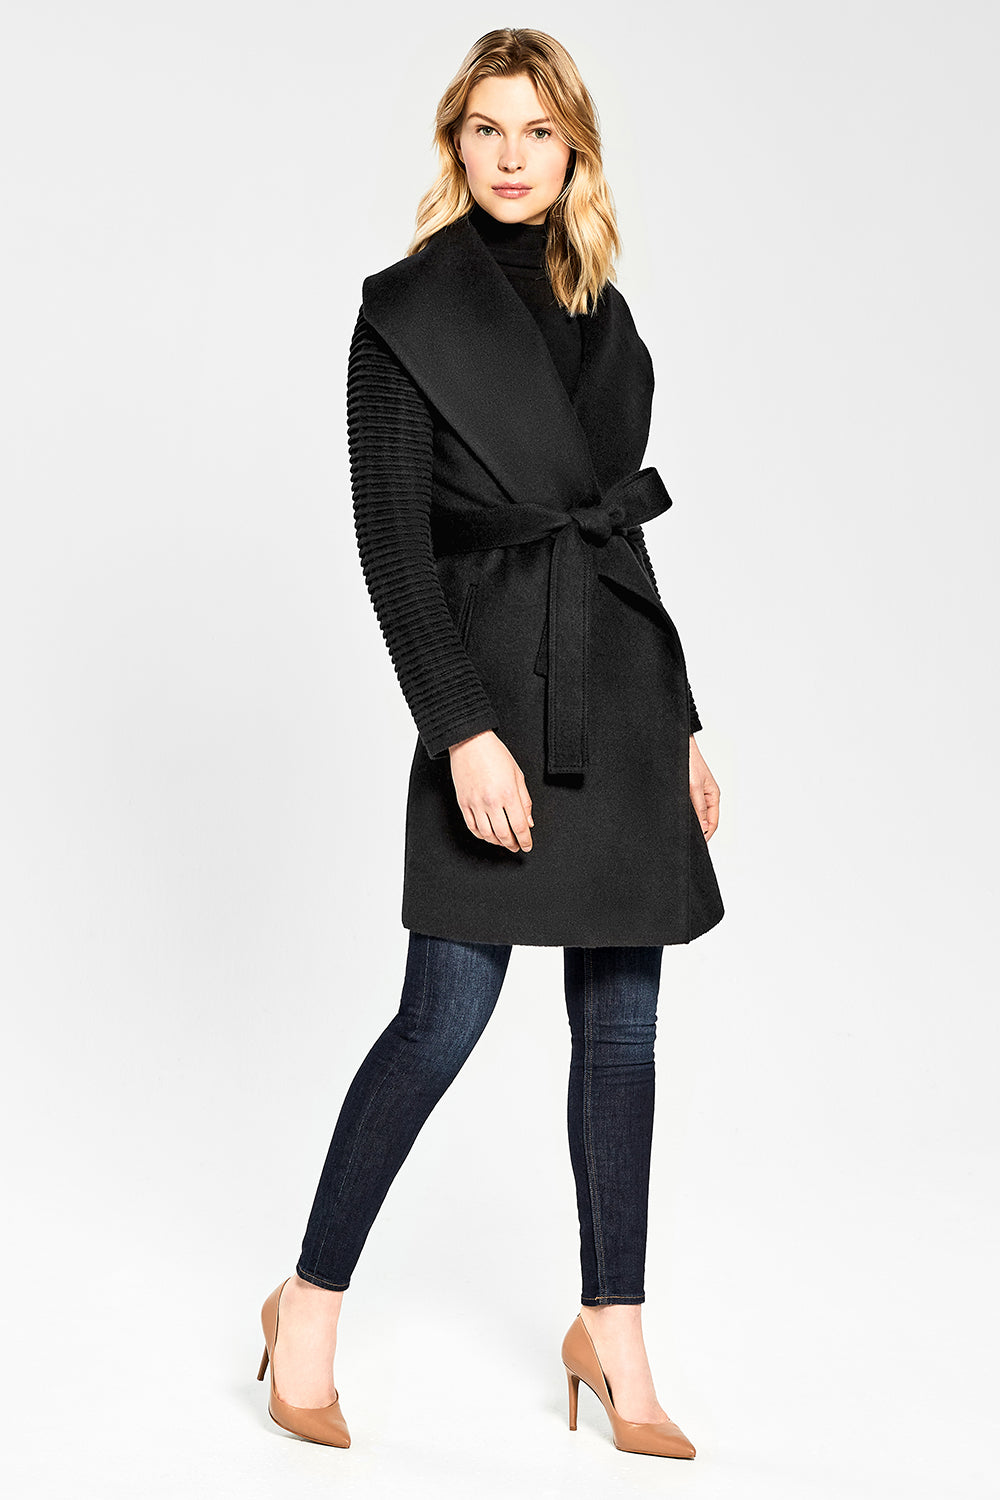 Sentaler Mid Length Shawl Collar Wrap Coat with Ribbed Sleeves featured in Baby Alpaca and available in Black. Seen from side.